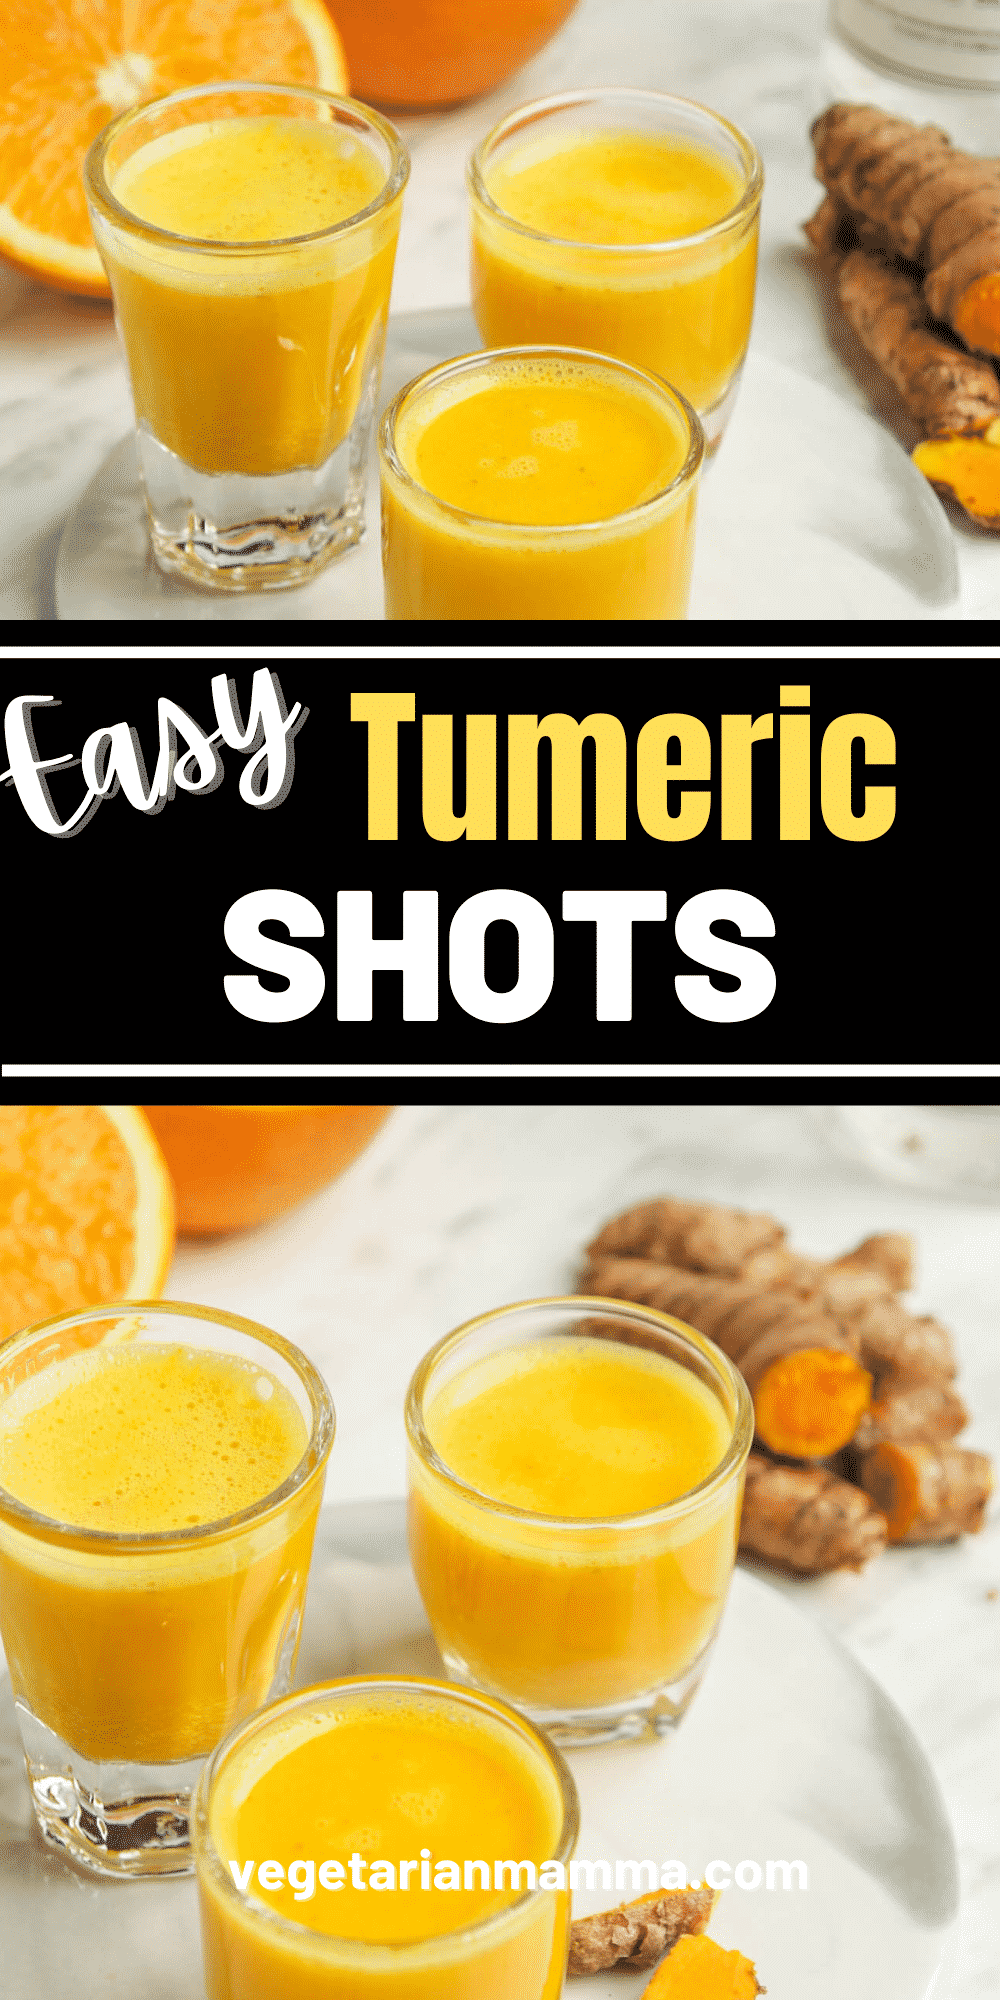 Turmeric shots are a delicious way to enjoy the powerful flavors of turmeric and also enjoy the benefits turmeric has to offer.